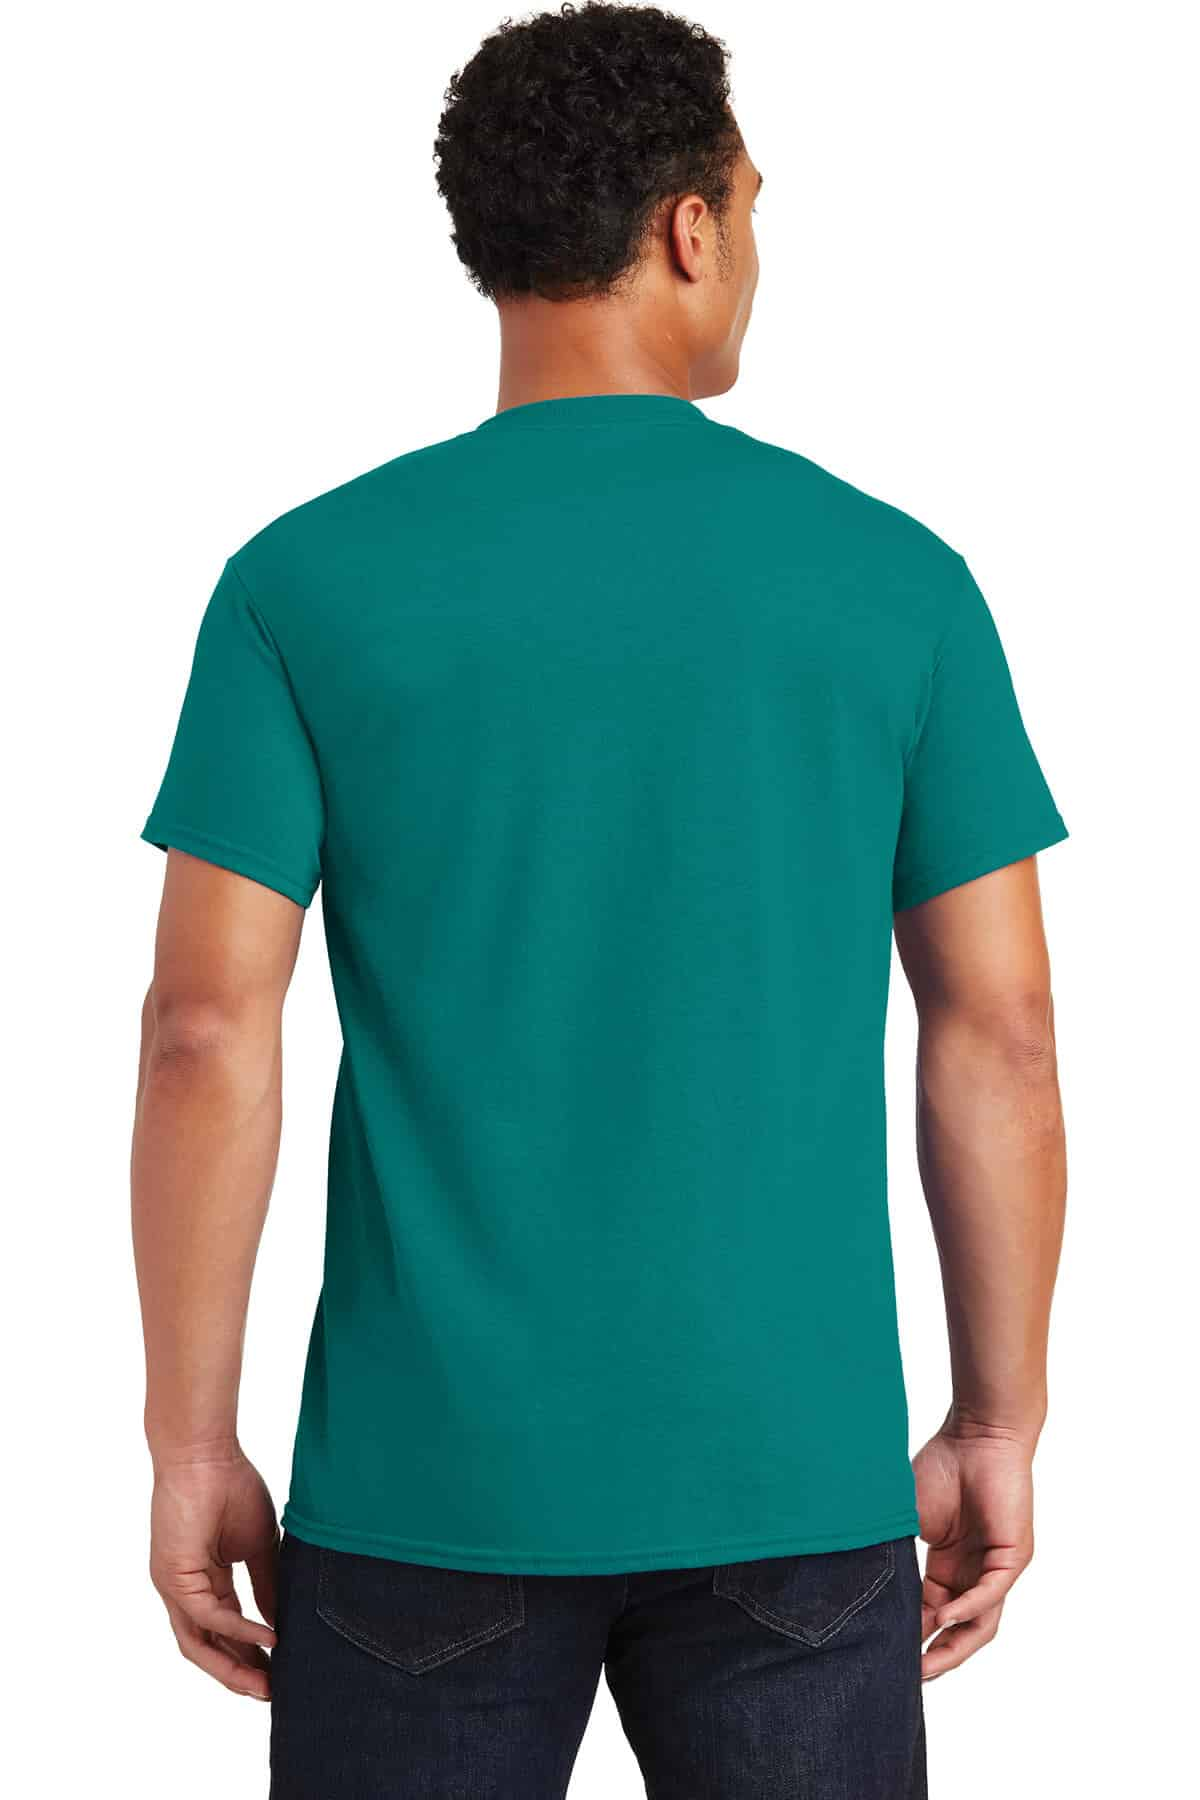 Jade Dome TeeShirt Back